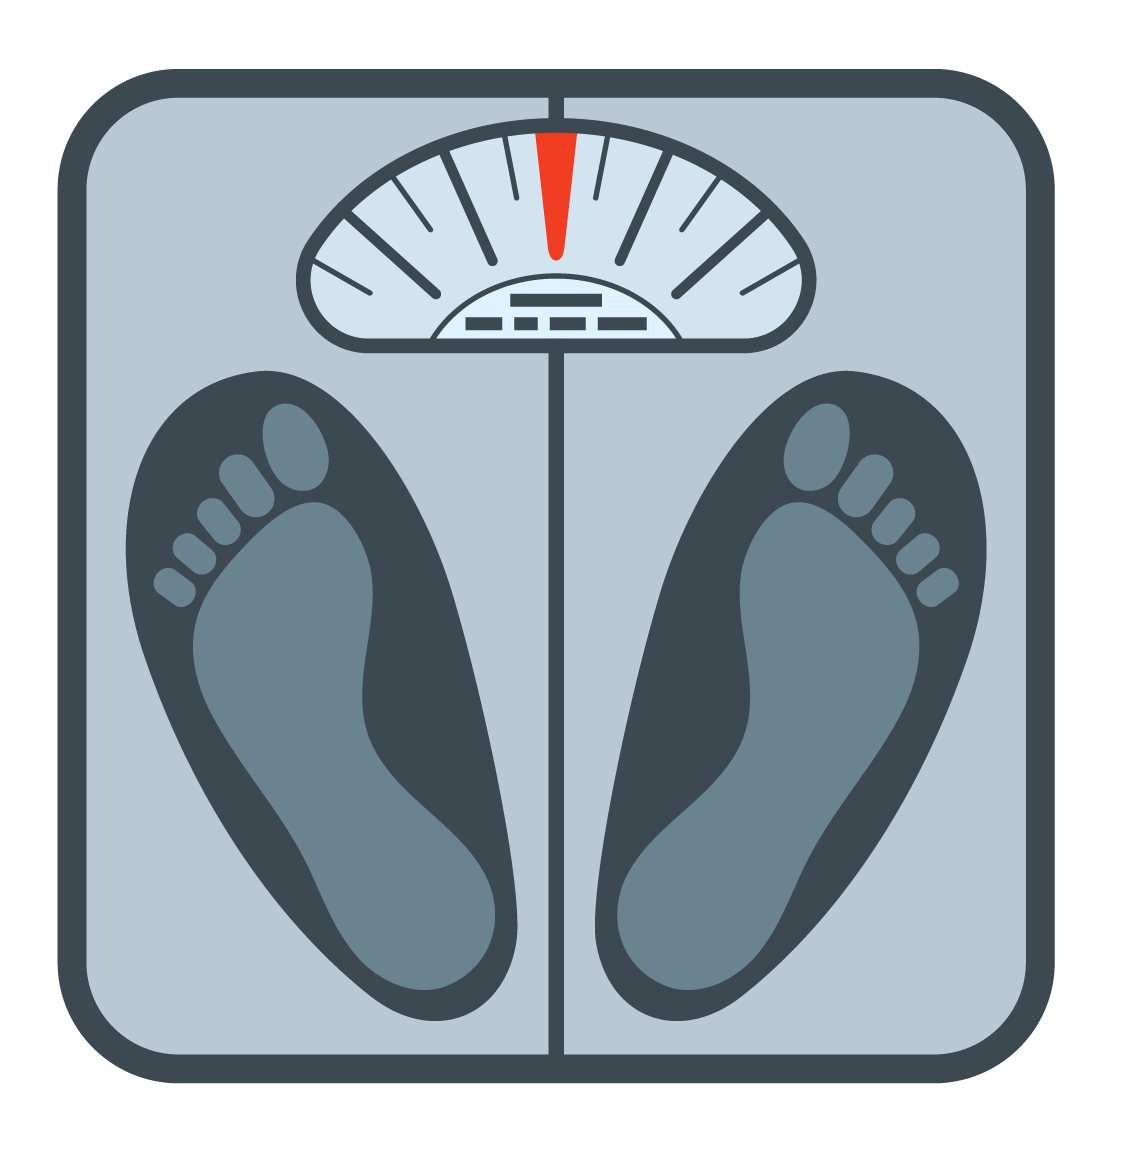 Weight clipart weighing scale, Weight weighing scale ...